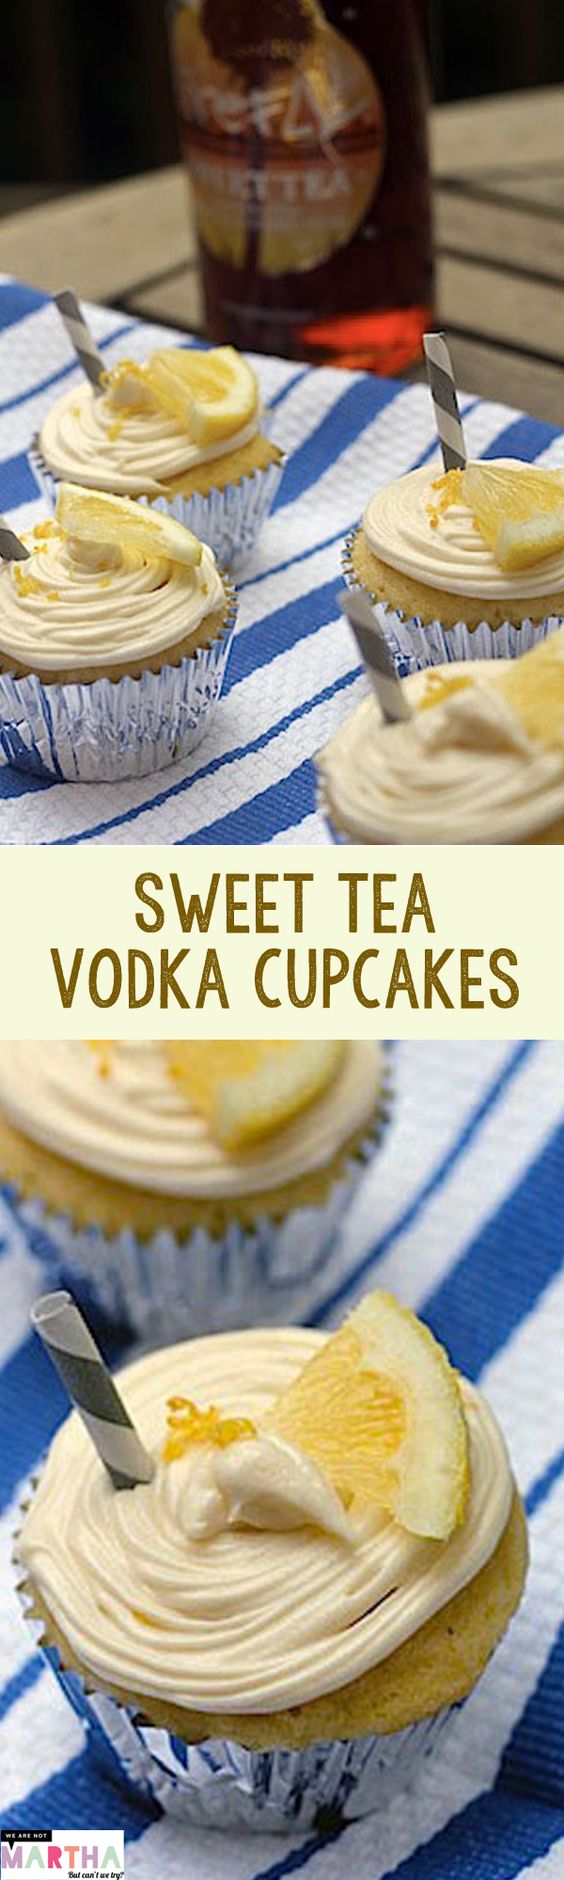 Sweet Tea Vodka Cupcakes -- This Firefly vodka cupcake recipe makes the perfect summer treat | wearenotmartha.com: